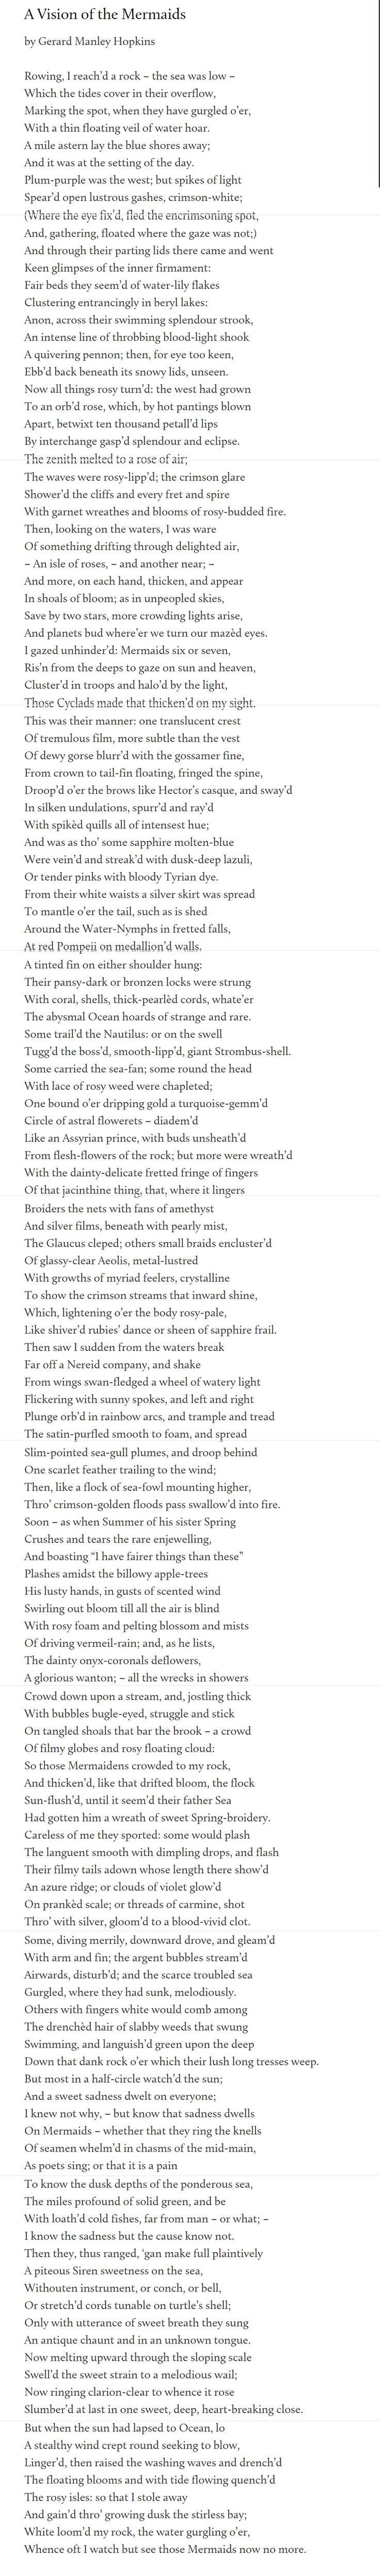 A Vision of the Mermaids by Gerard Manley Hopkins